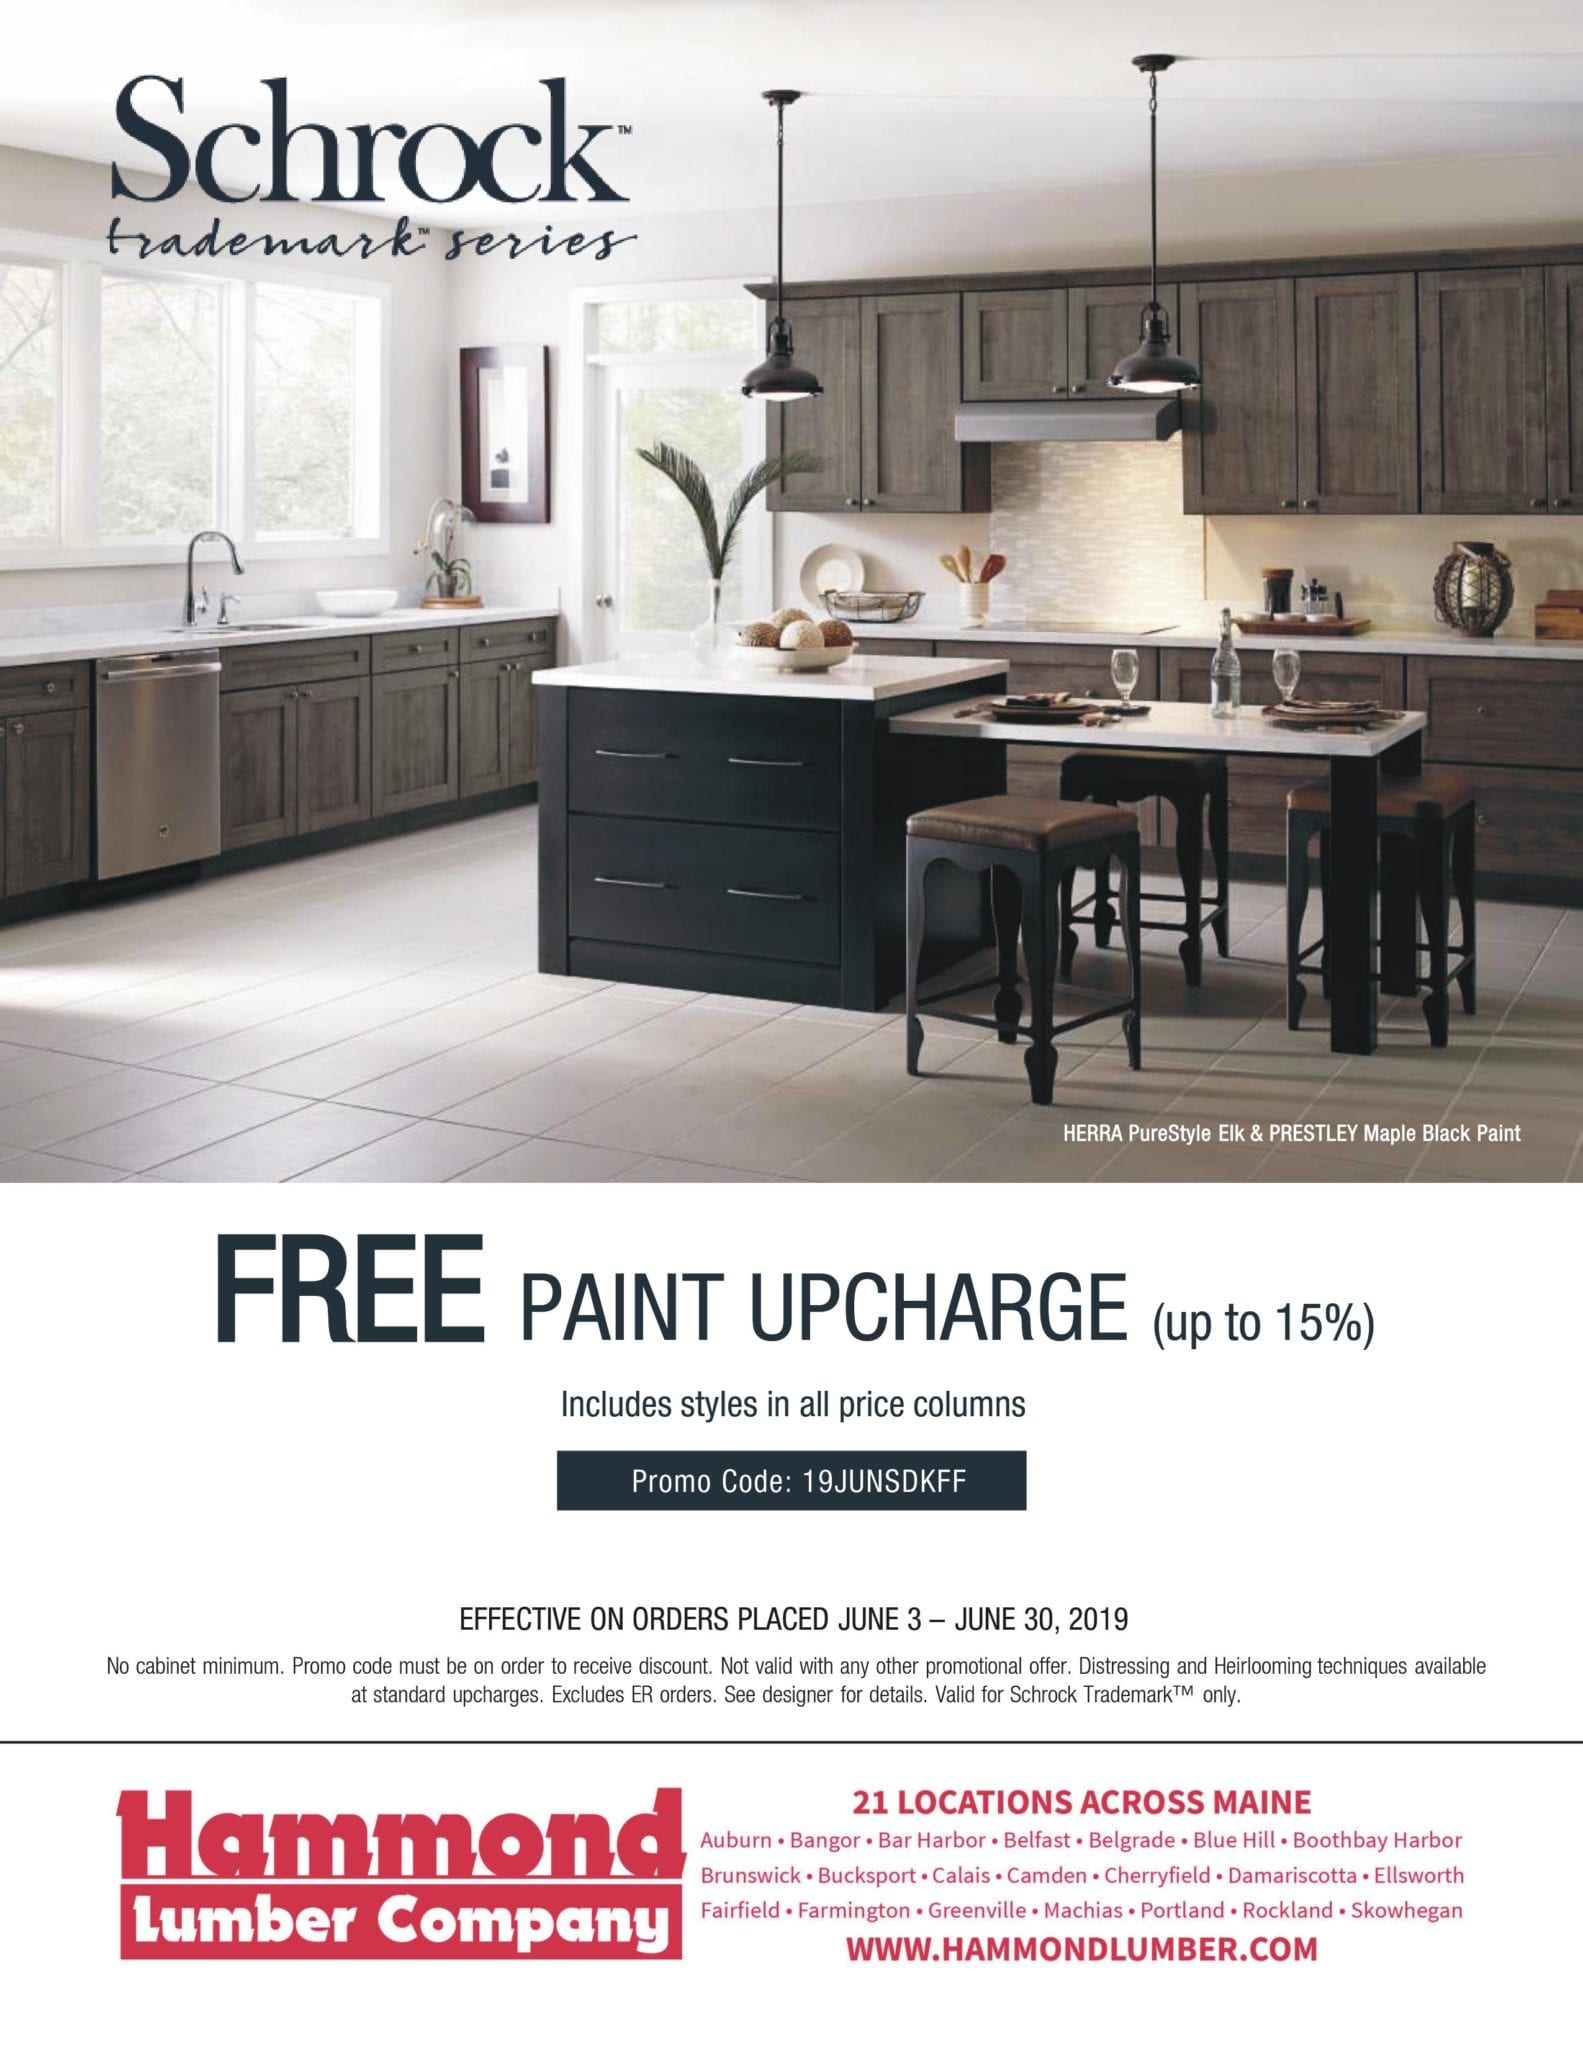 Schrock Trademark Series Free Paint Upcharge Hammond Lumber Company Offer